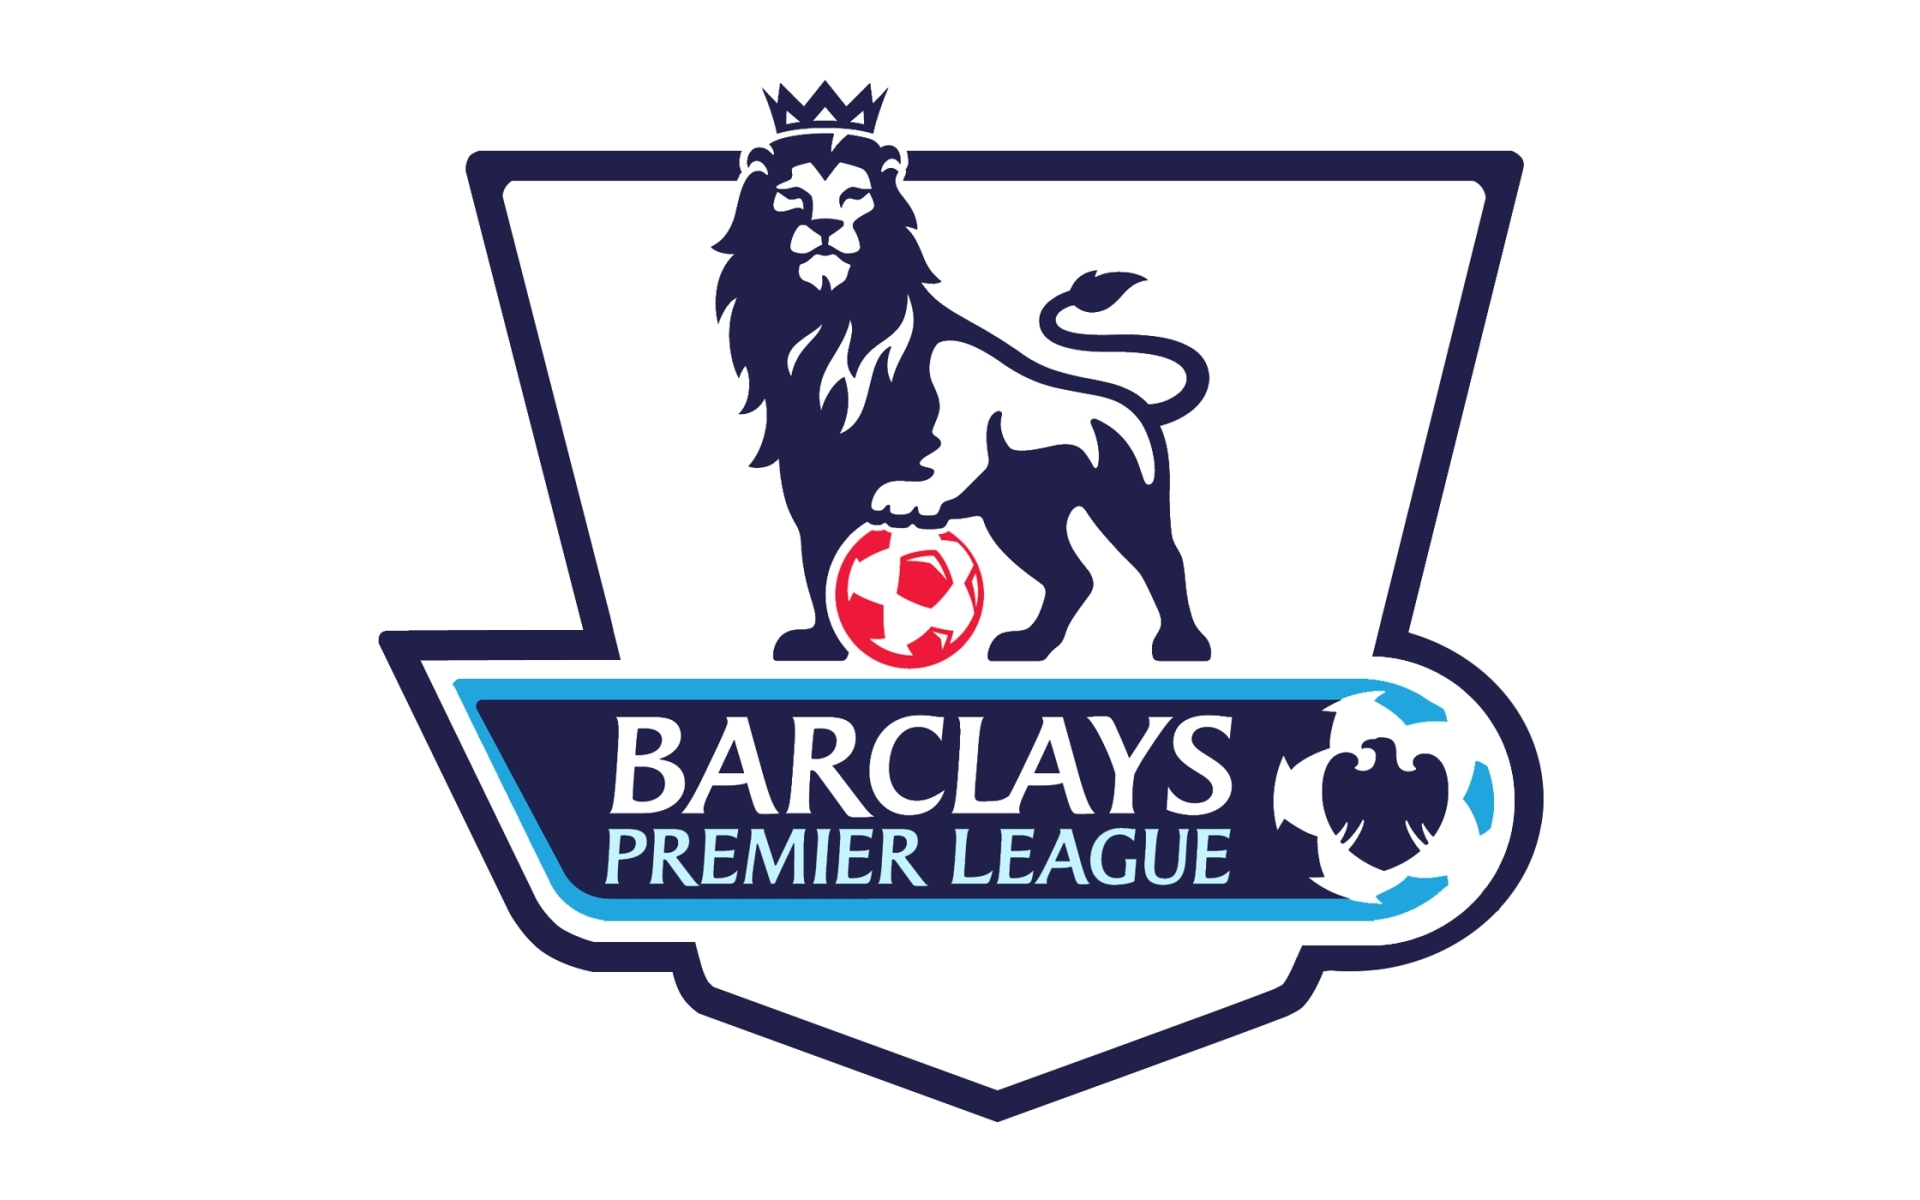 Get the latest Premier League news results and fixtures The latest predictions highlights and team and player rumours from The Sun